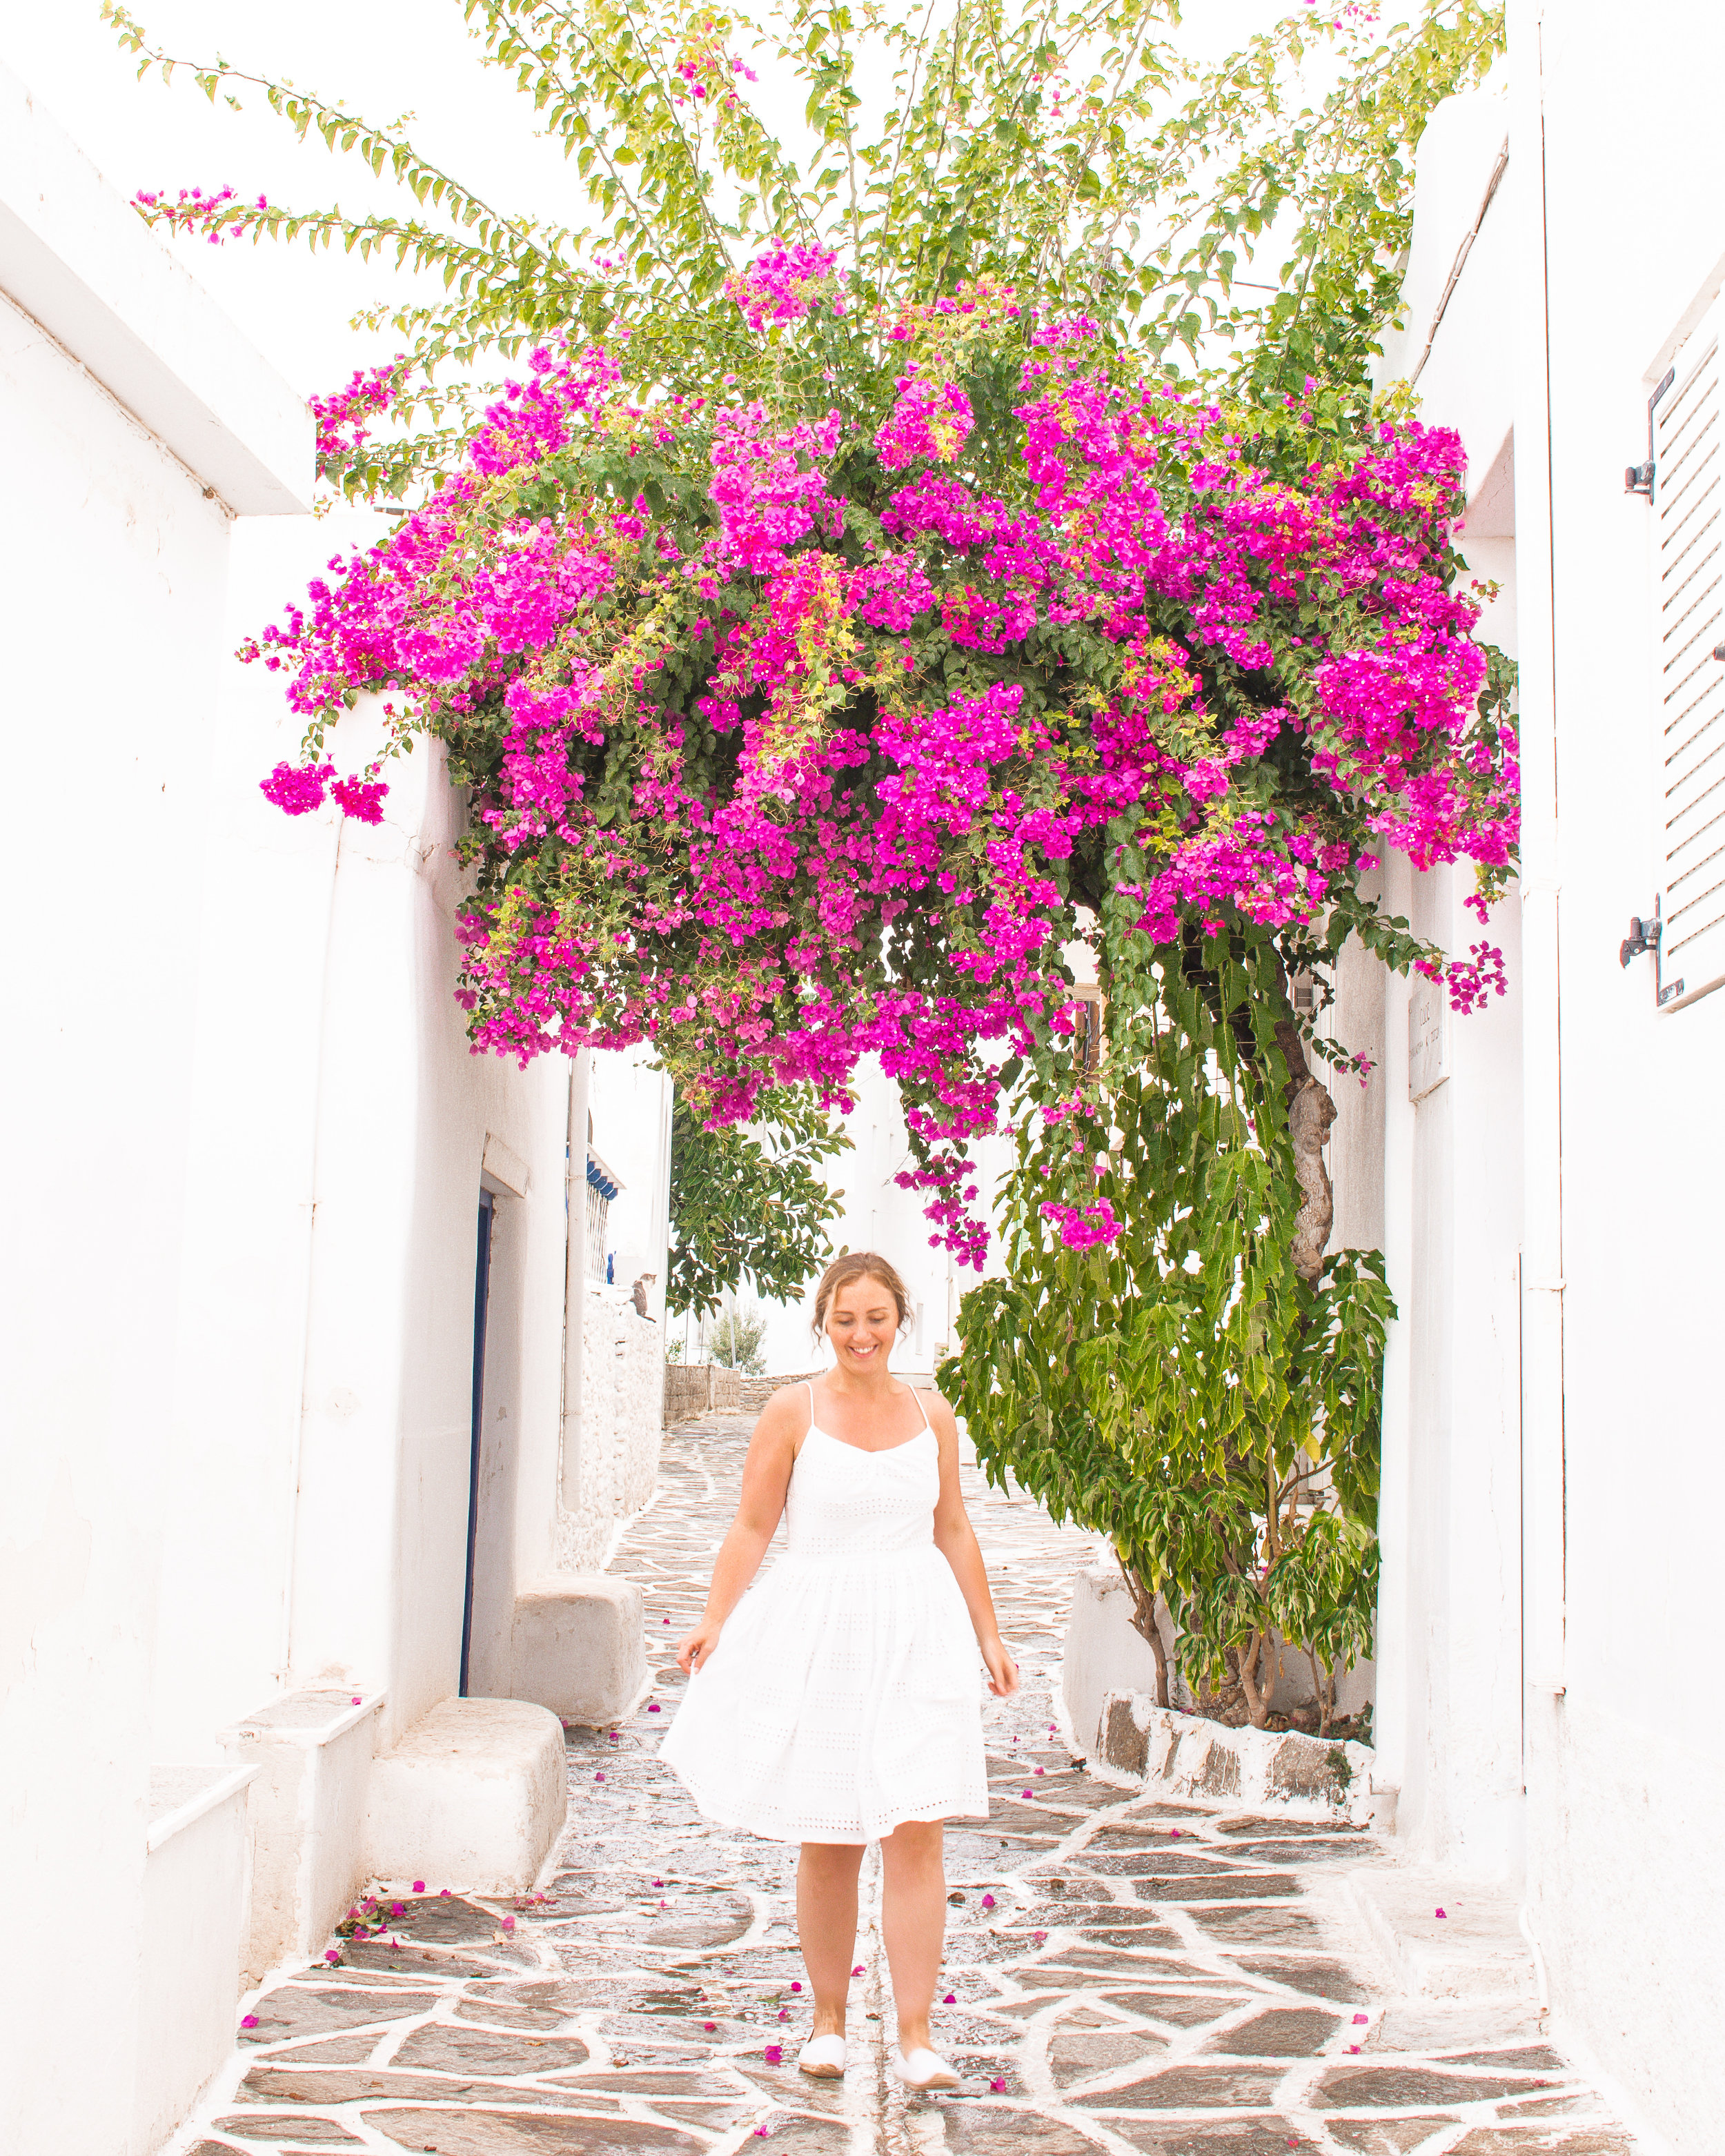 We travelled at the end of shoulder season through Greece and the Cyclades islands, and had entire streets and restaurants to ourselves!